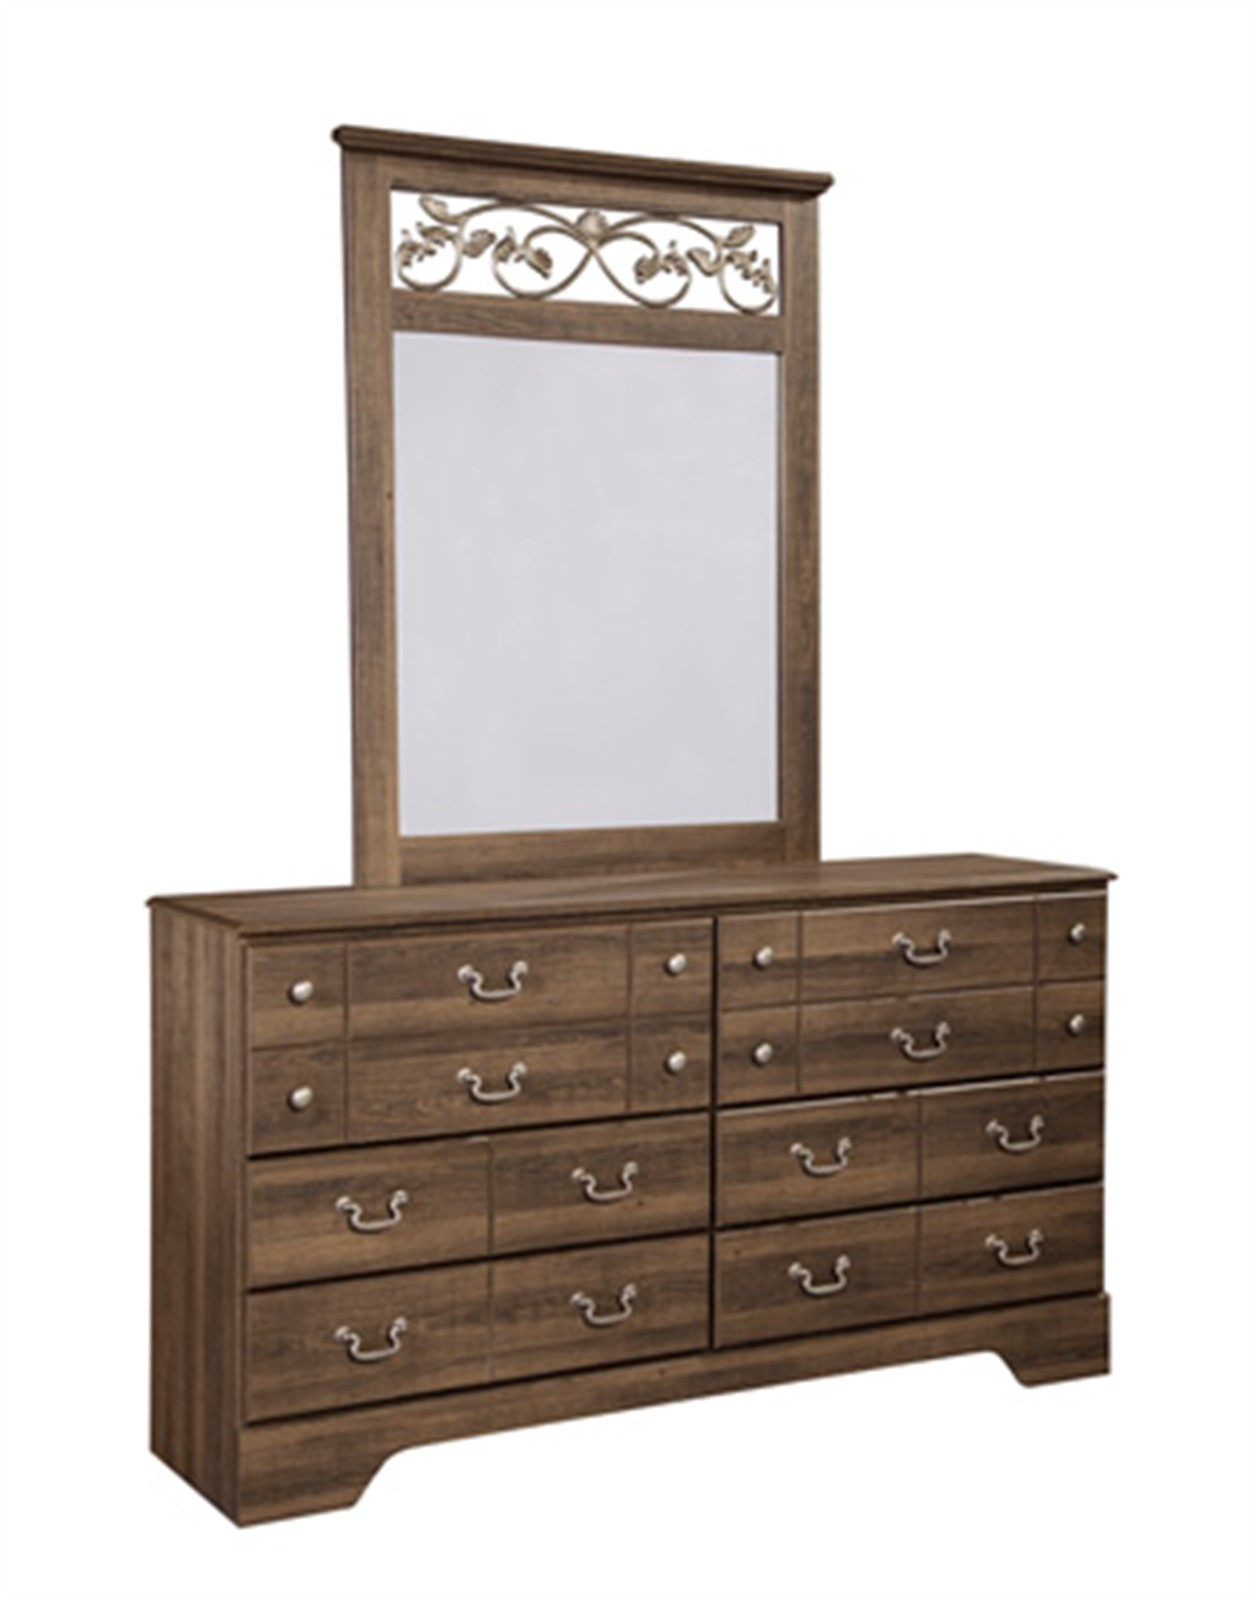 Allymore Dresser and Mirror Set - Brown